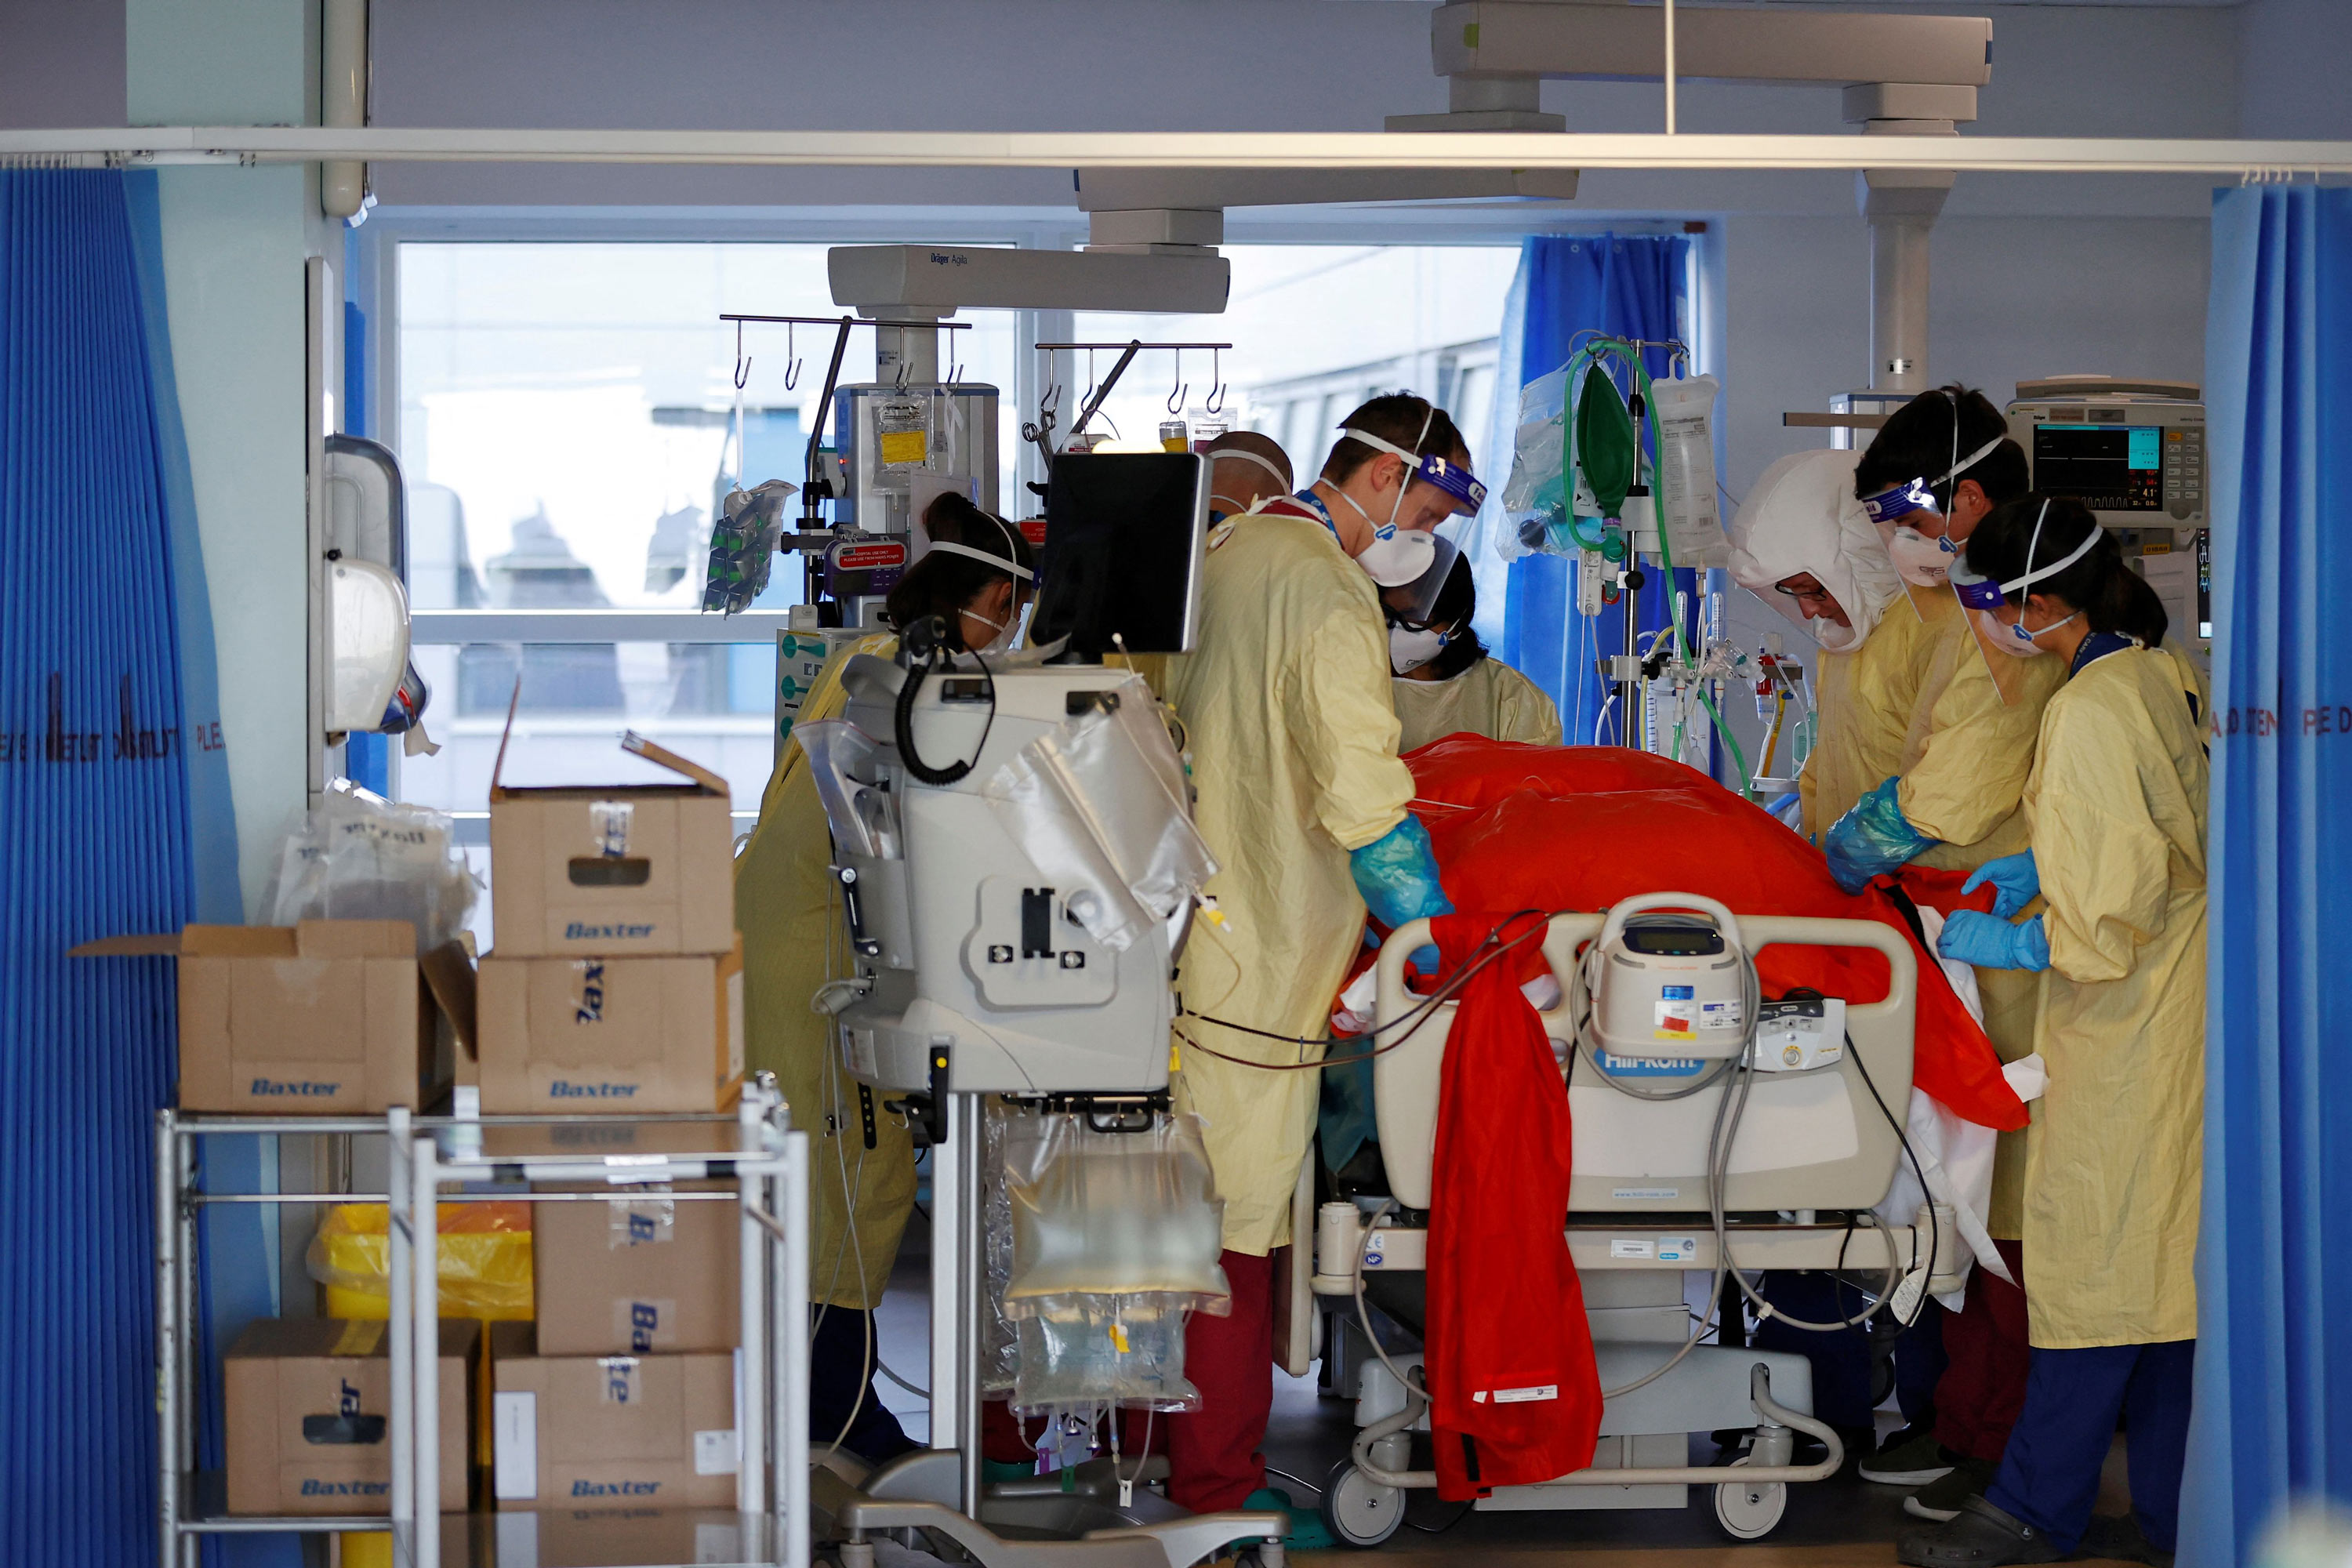 Medical workers help prone a Covid-19 patient in the intensive care unit at Queen Alexandra Hospital in Portsmouth, England, on March 23.